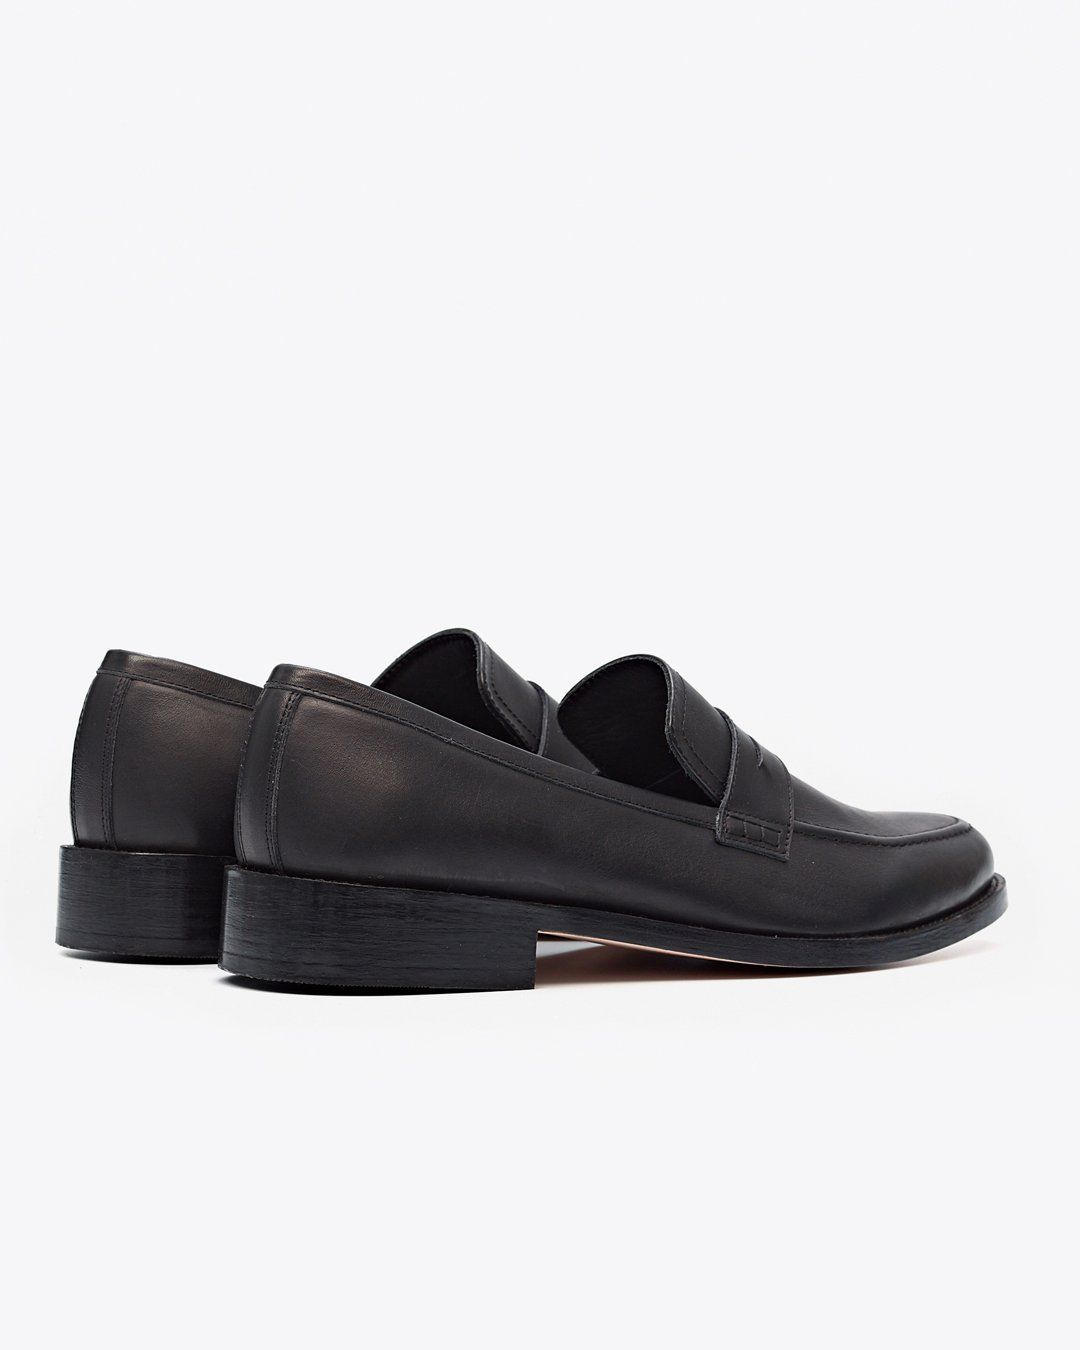 Chamberlain Penny Loafer Black/Black Men's Leather Loafer Nisolo